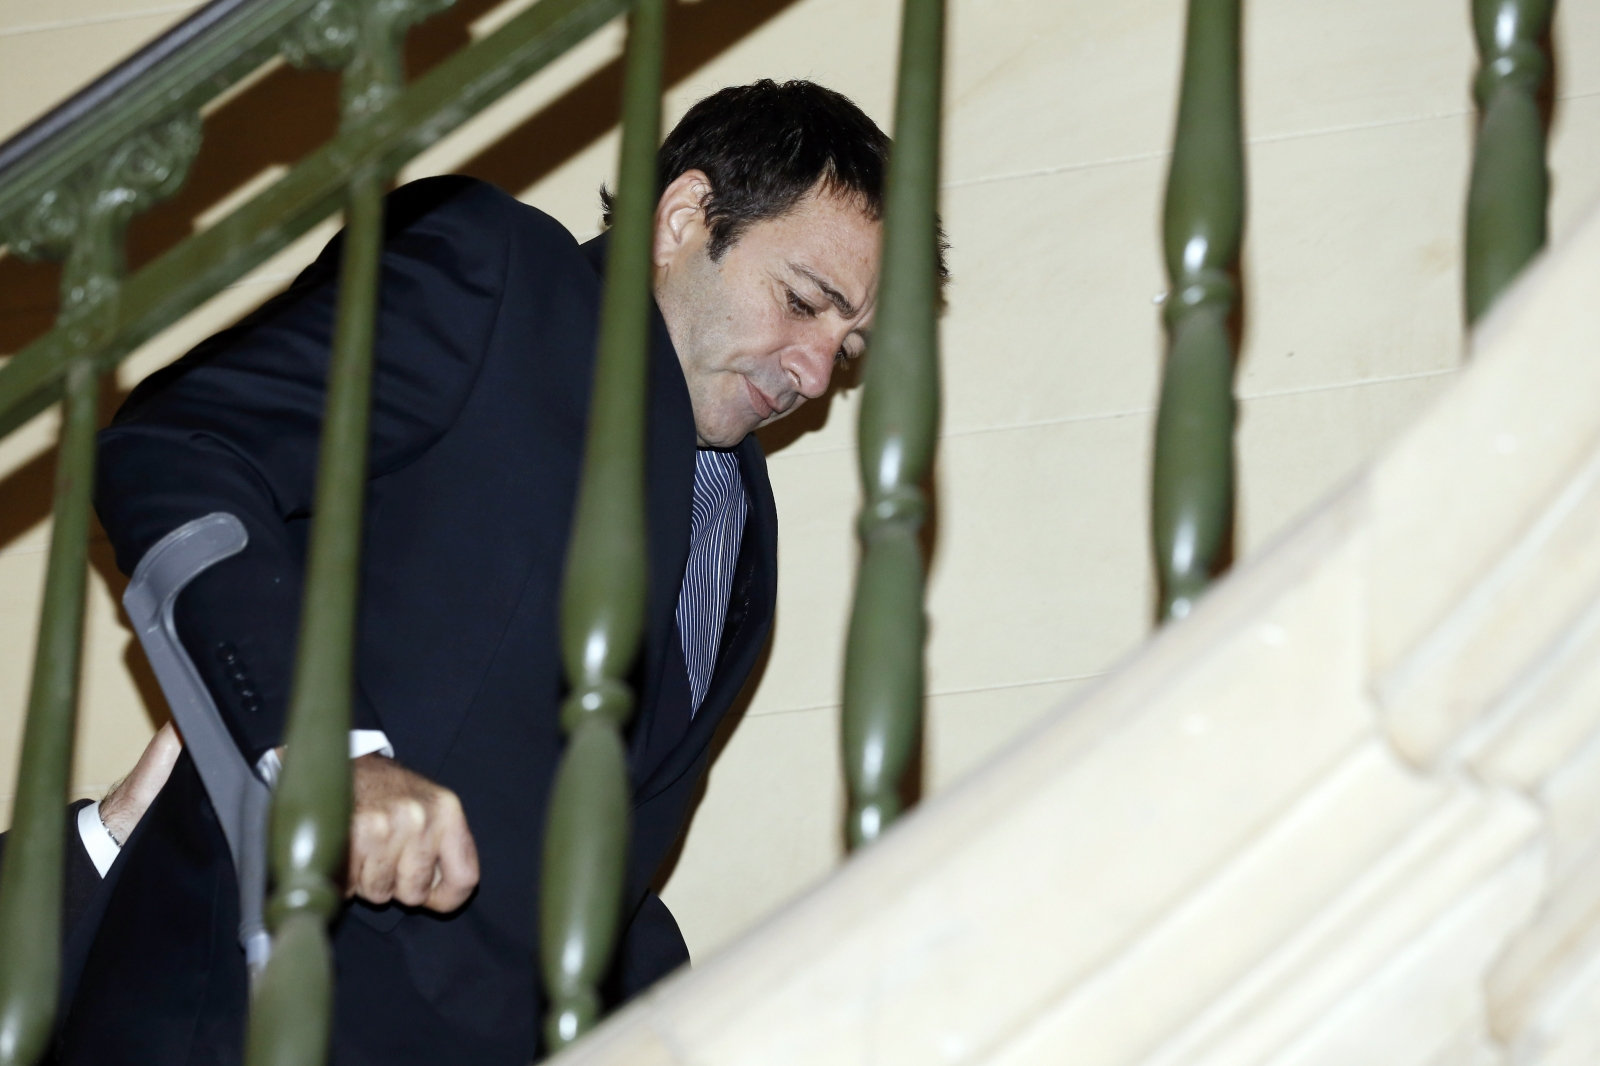 Ian Griffin on crutches at court in Paris where he denied murdering Kinga Legg